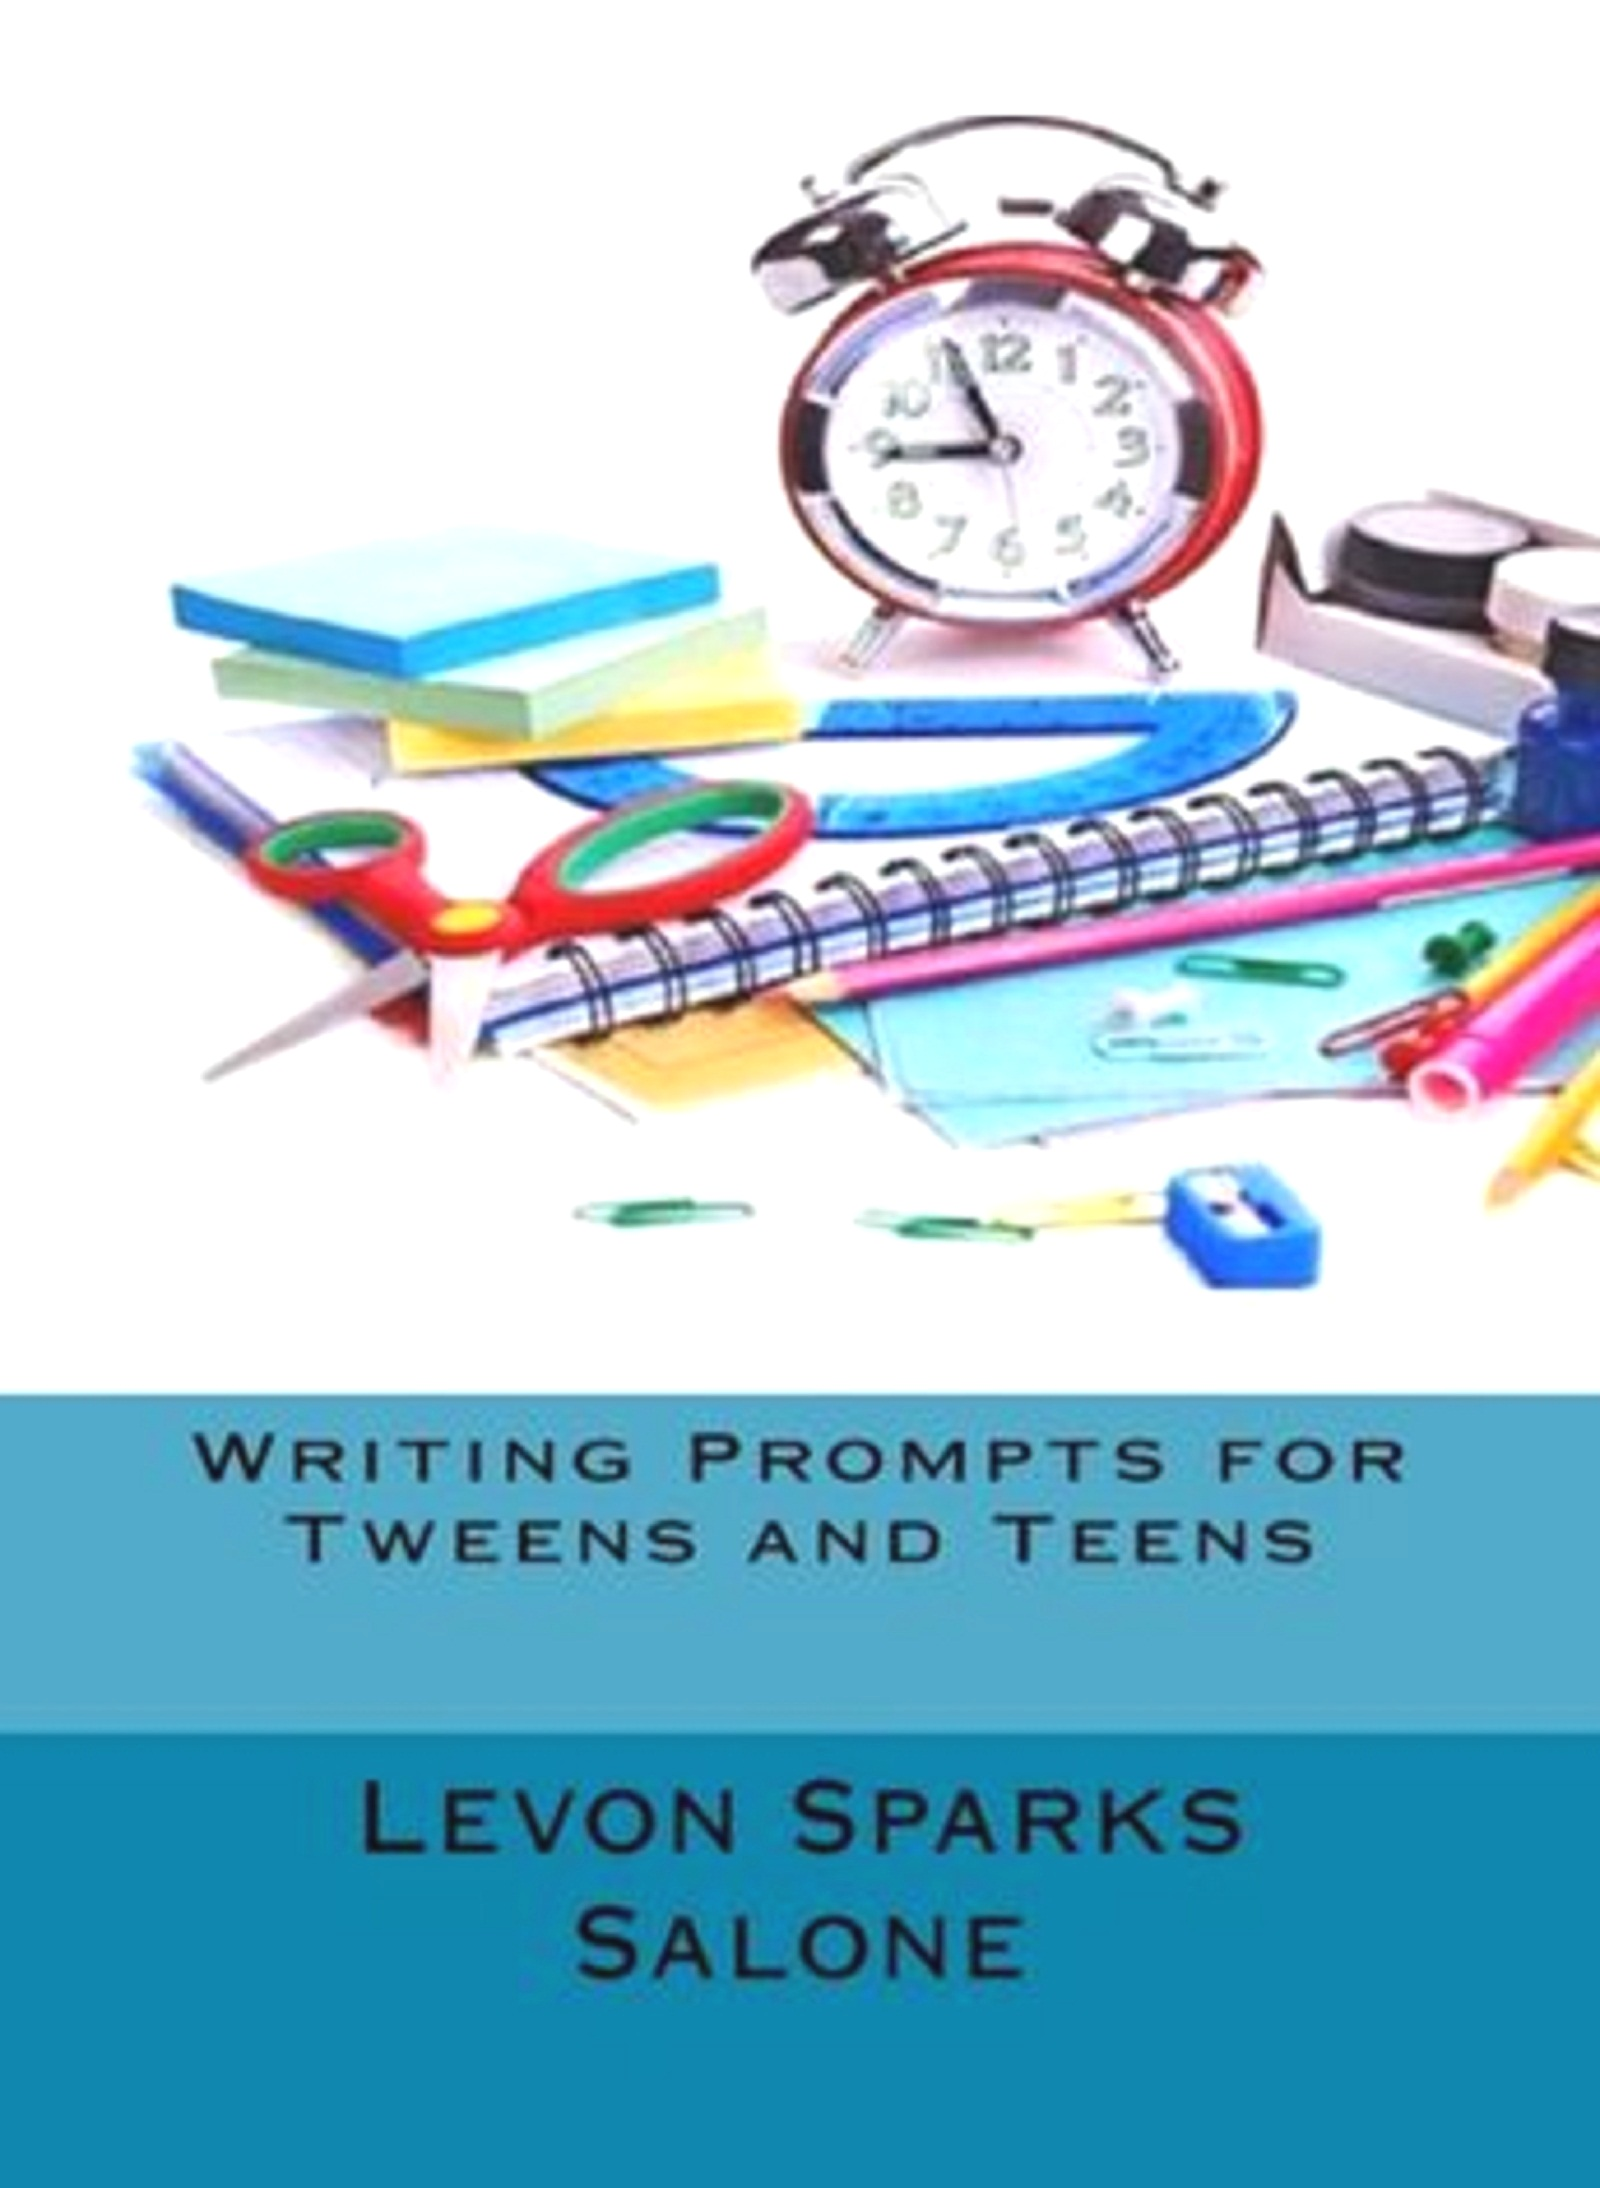 Writing Prompts for Tweens and Teens